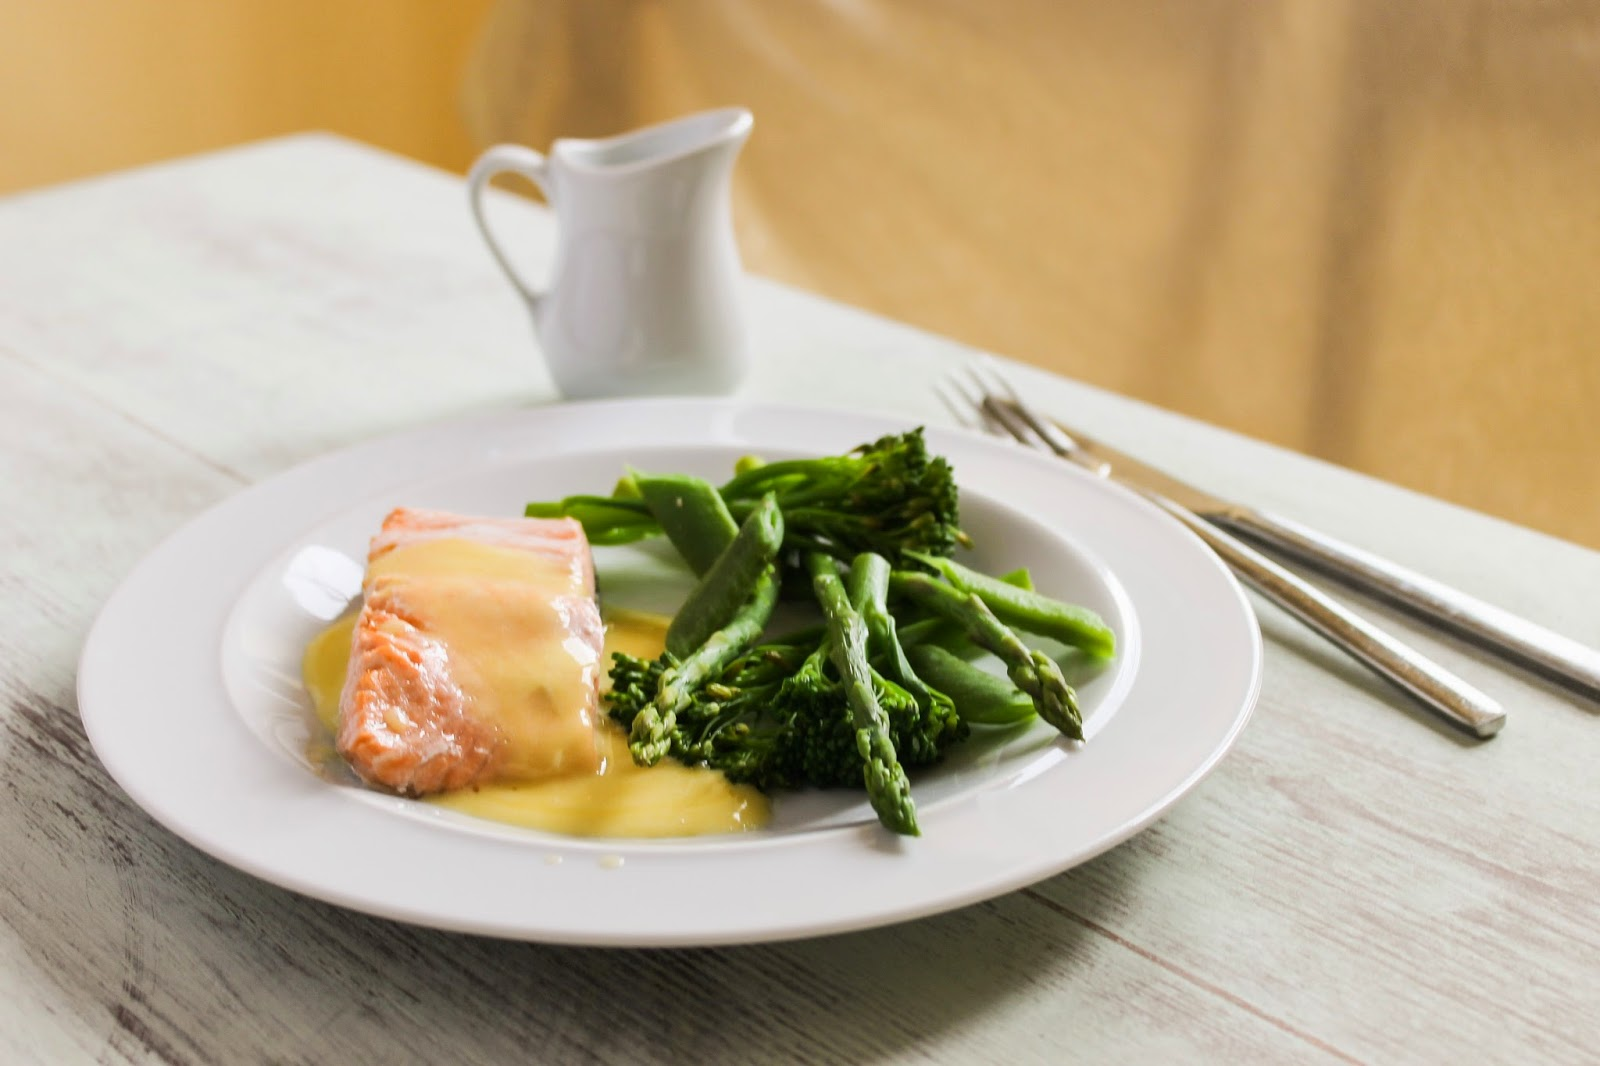 Salmon with hollandaise